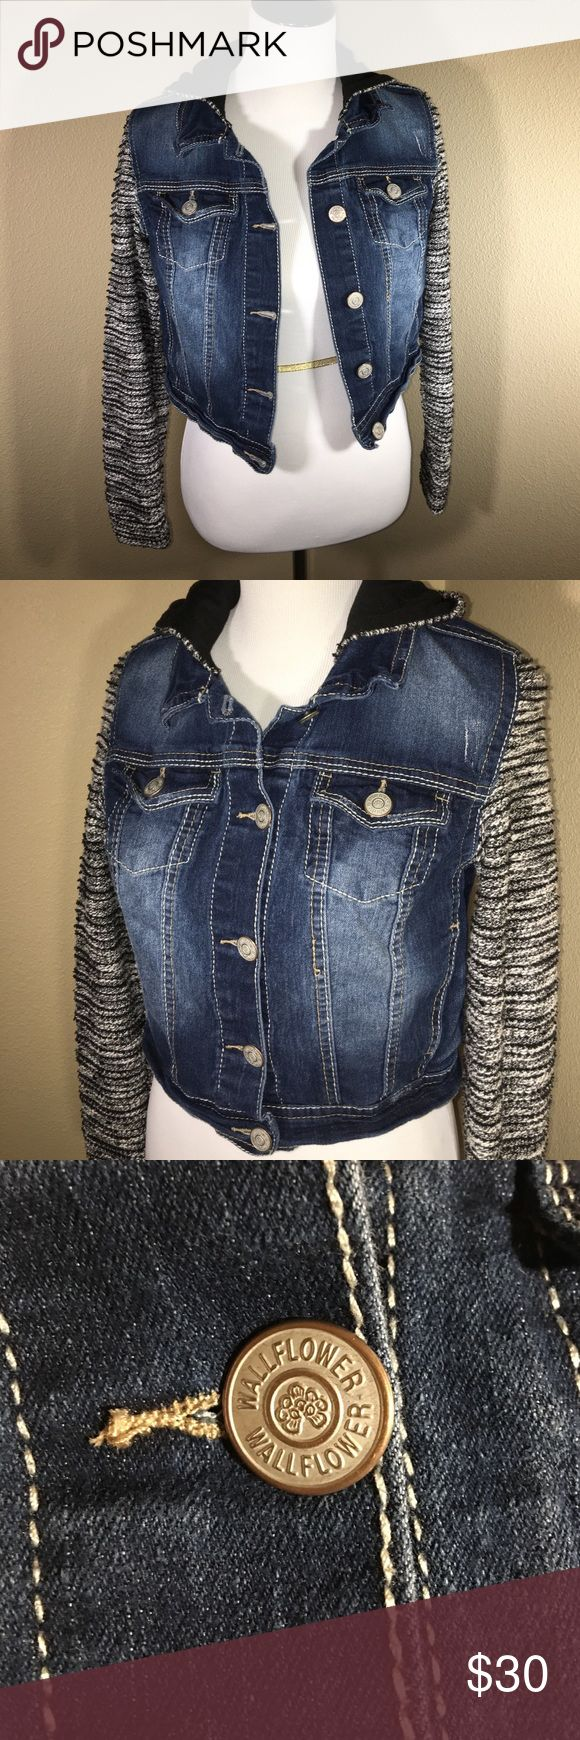 🆕 Hooded Jean Jacket Adorable Hooded Jean Jacket by Wallflower. Sweater like sleeves, and hood. Button down. 2 hand pockets, and 2 button breast pockets. EUC. Offers welcome. 20% off bundles. Wallflower Jackets & Coats Jean Jackets